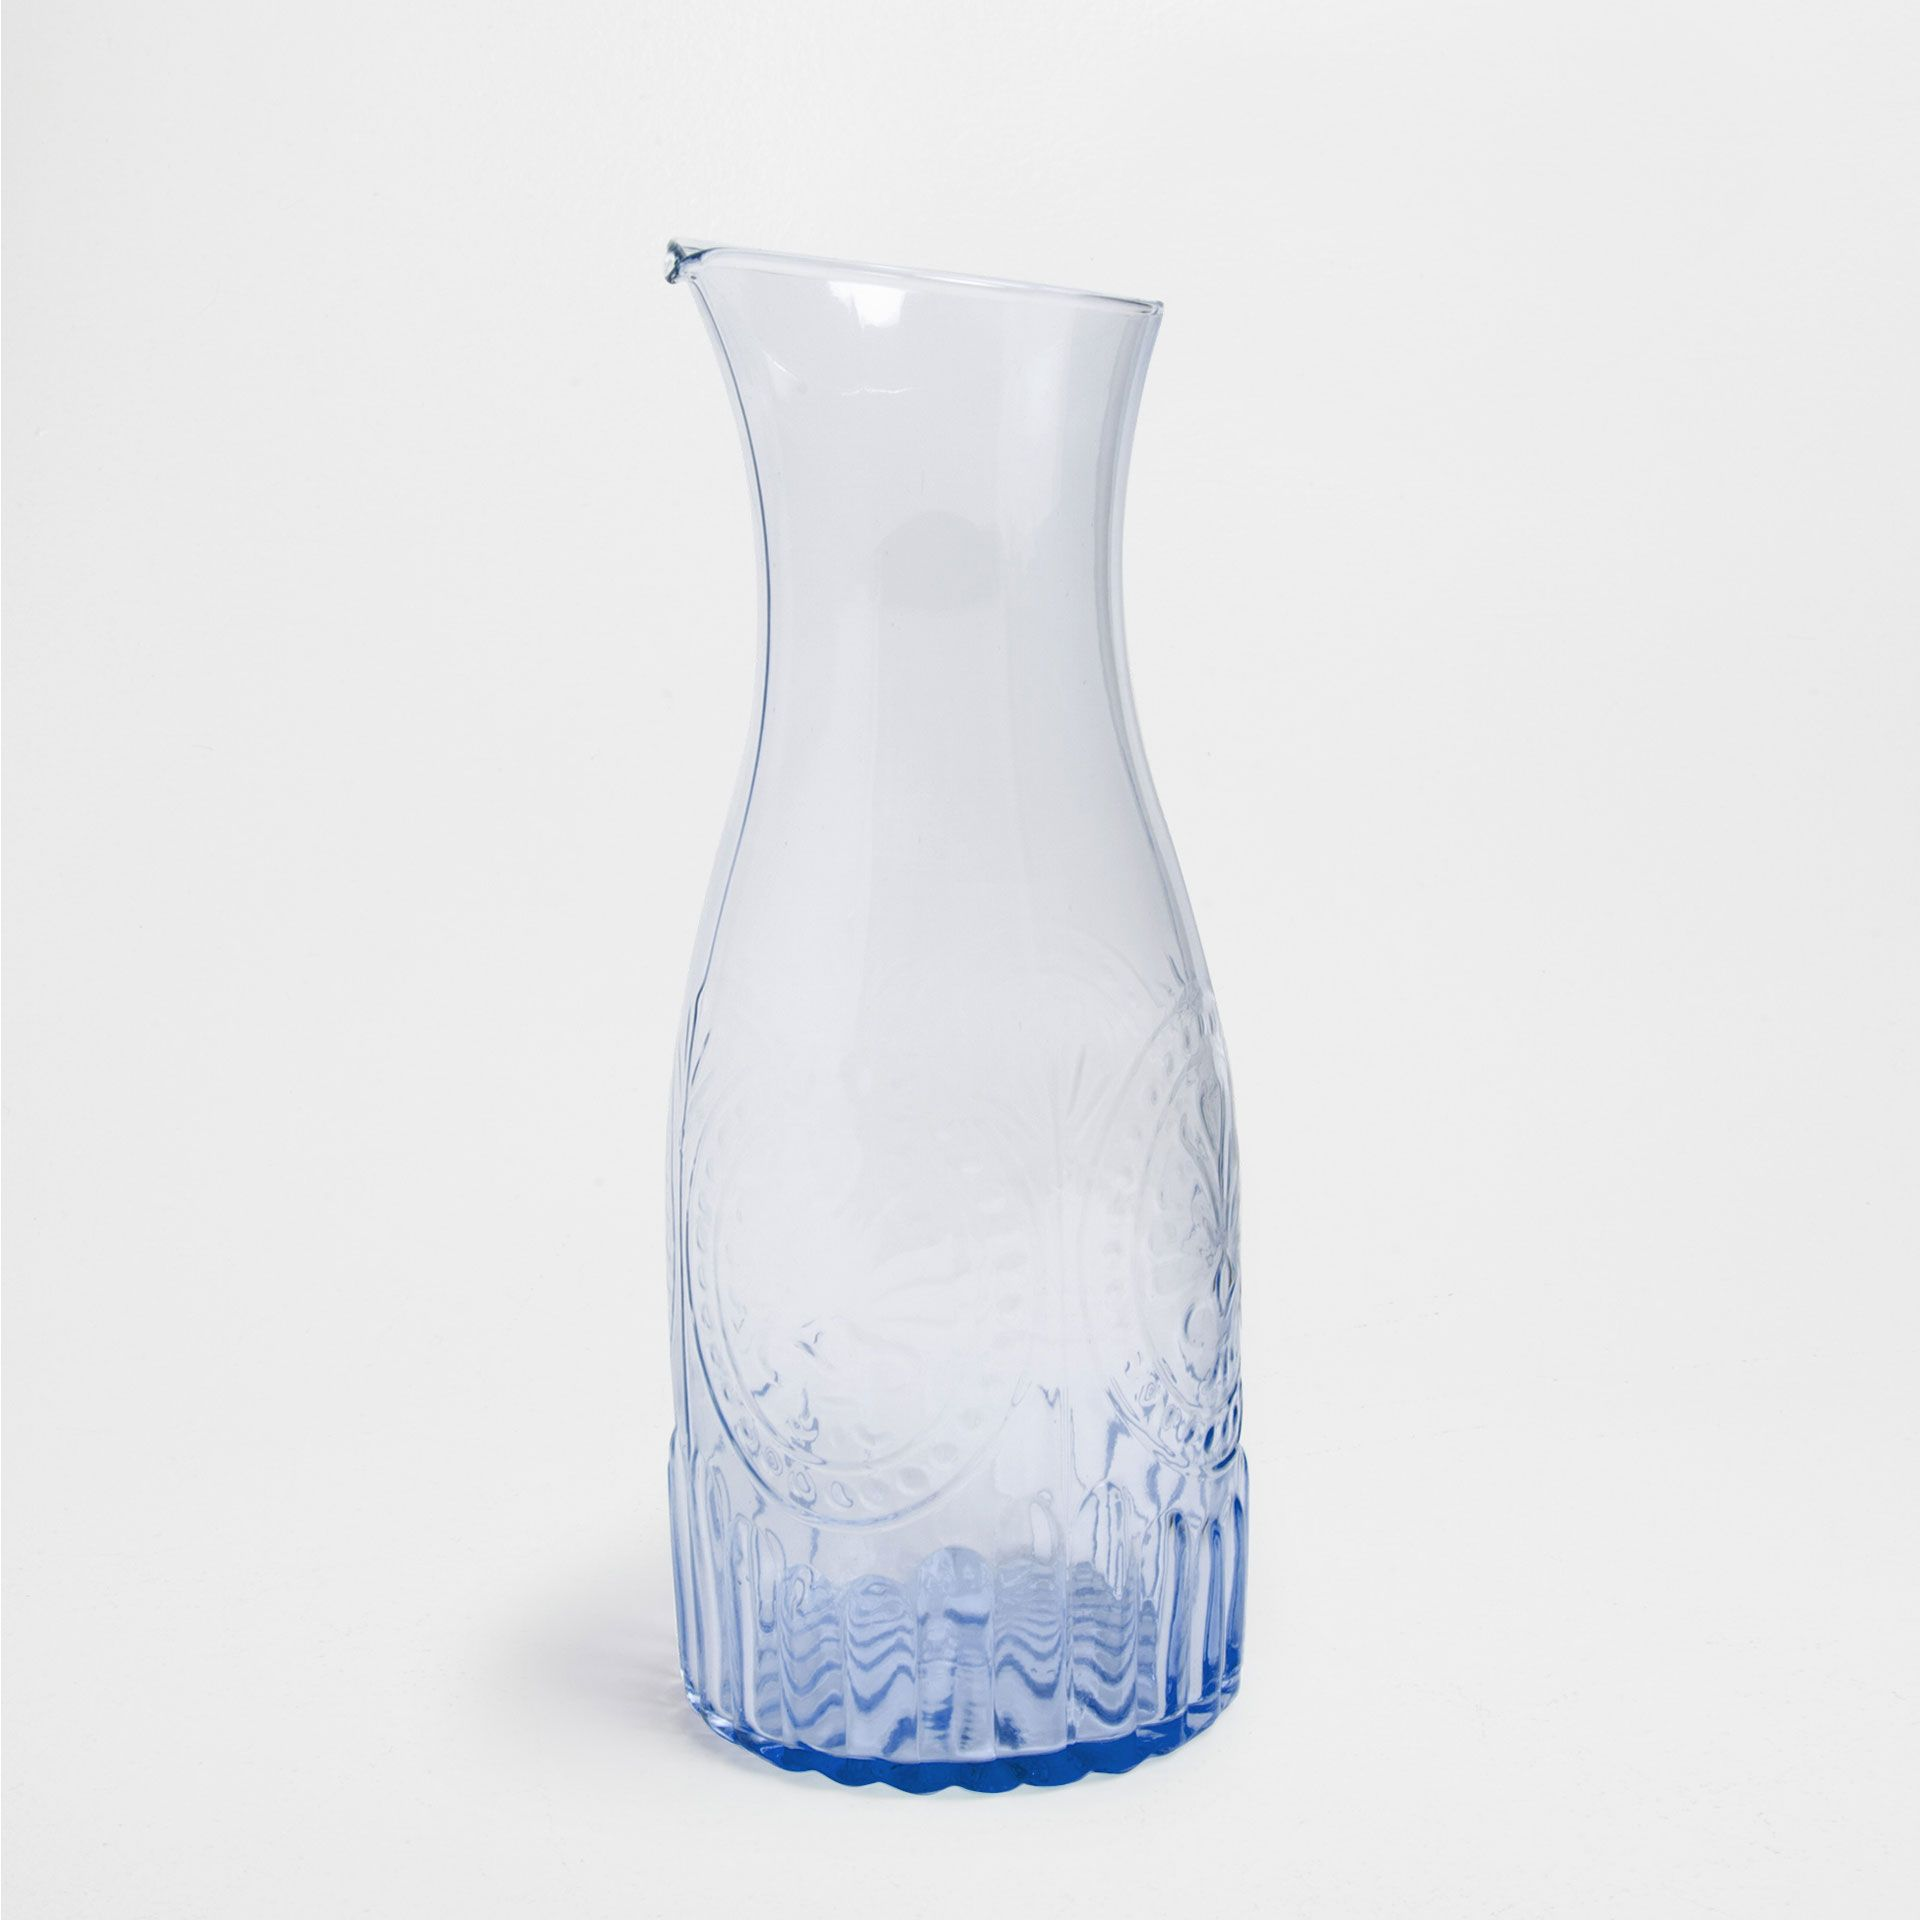 CARAFE VERRE RELIEF - Carafes - Verrerie - Table | Zara Home France